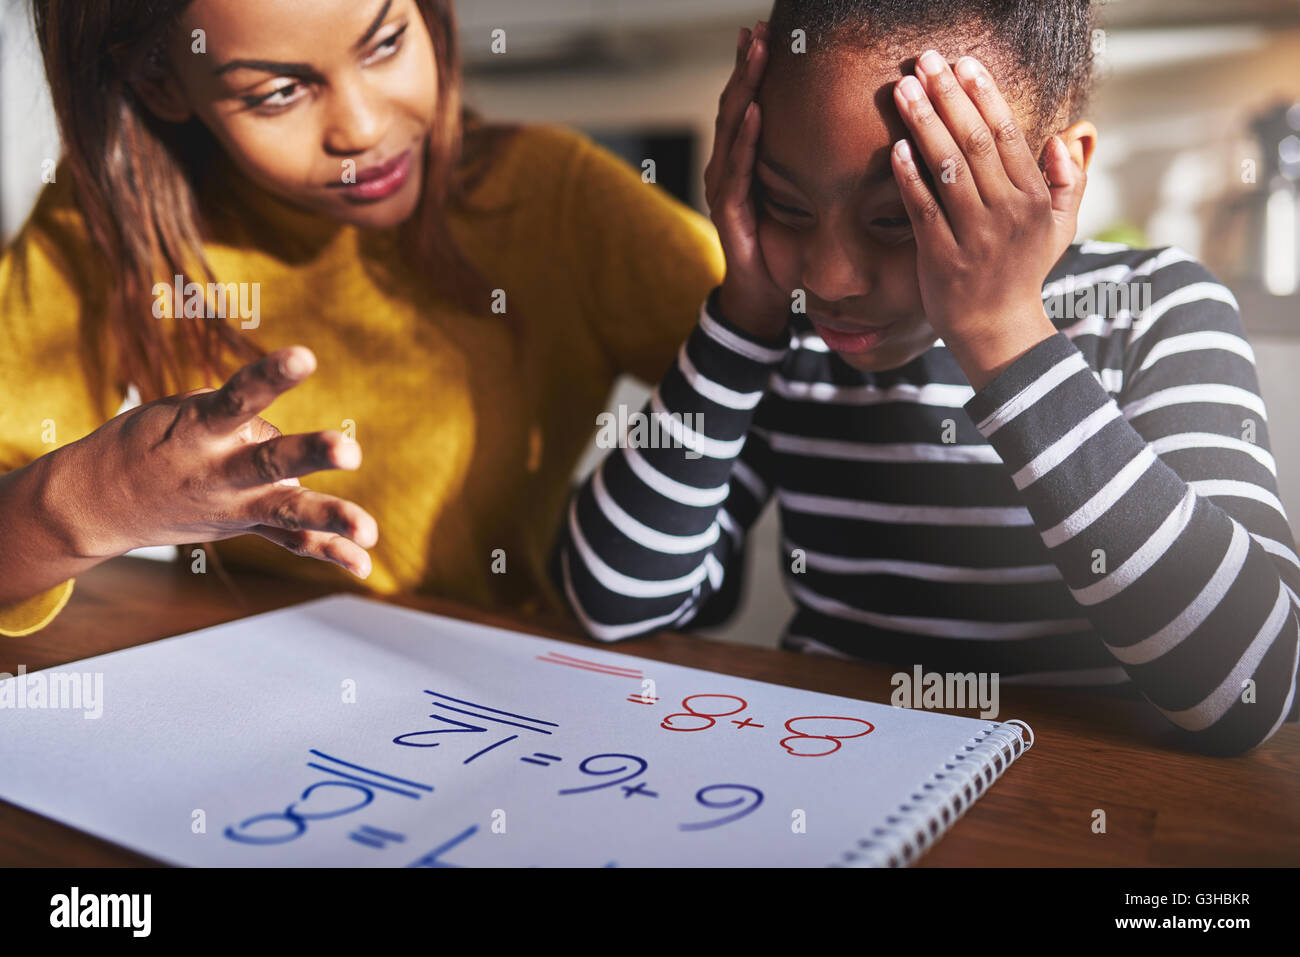 Mother learning child to calculate, child looking frustrated. Black woman and child - Stock Image